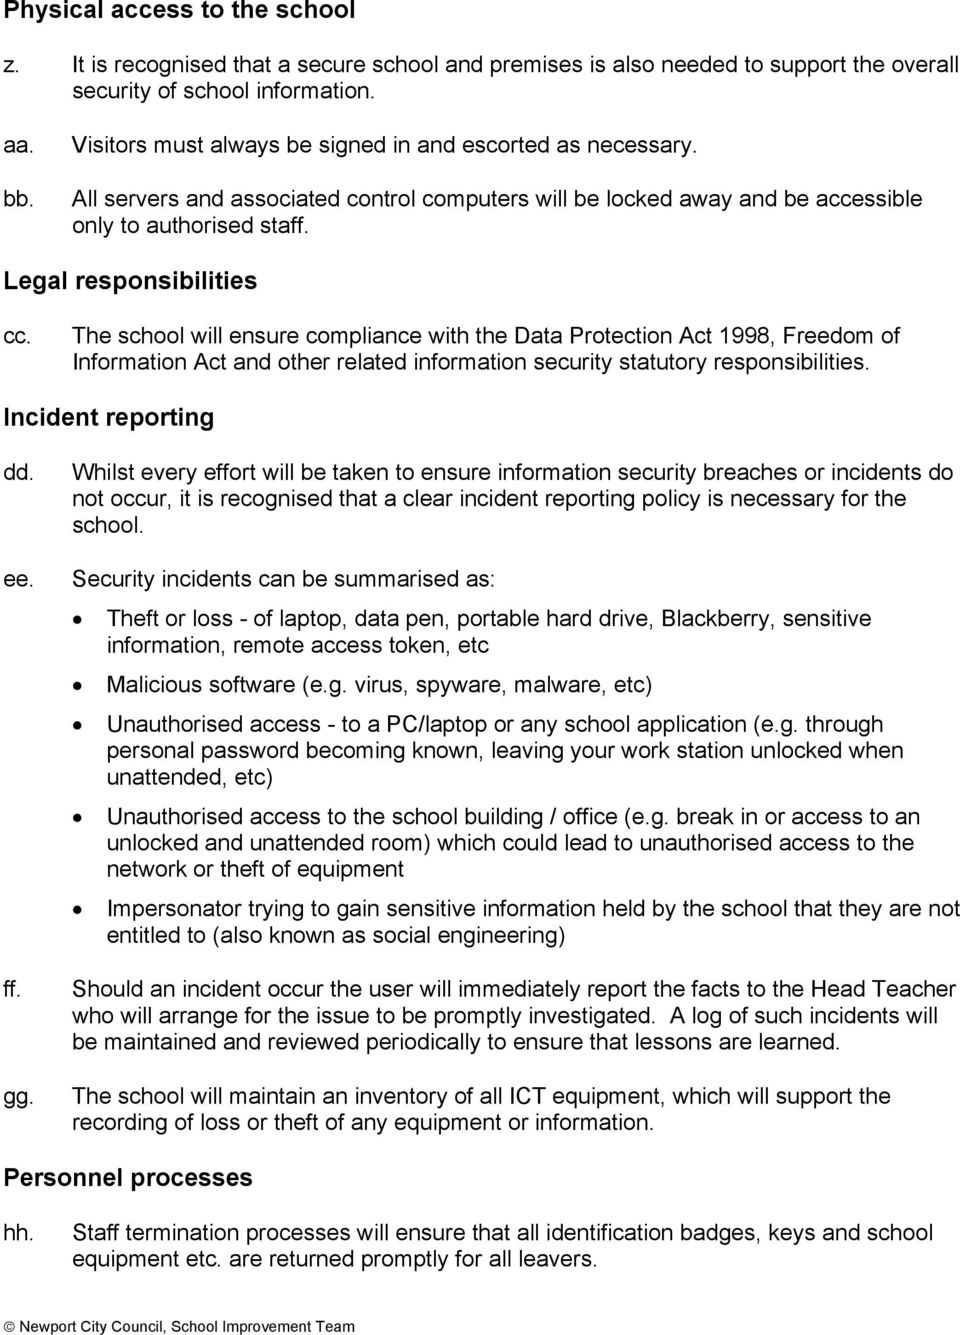 The school will ensure compliance with the Data Protection Act 1998, Freedom of Information Act and other related information security statutory responsibilities. Incident reporting dd. ee. ff. gg.